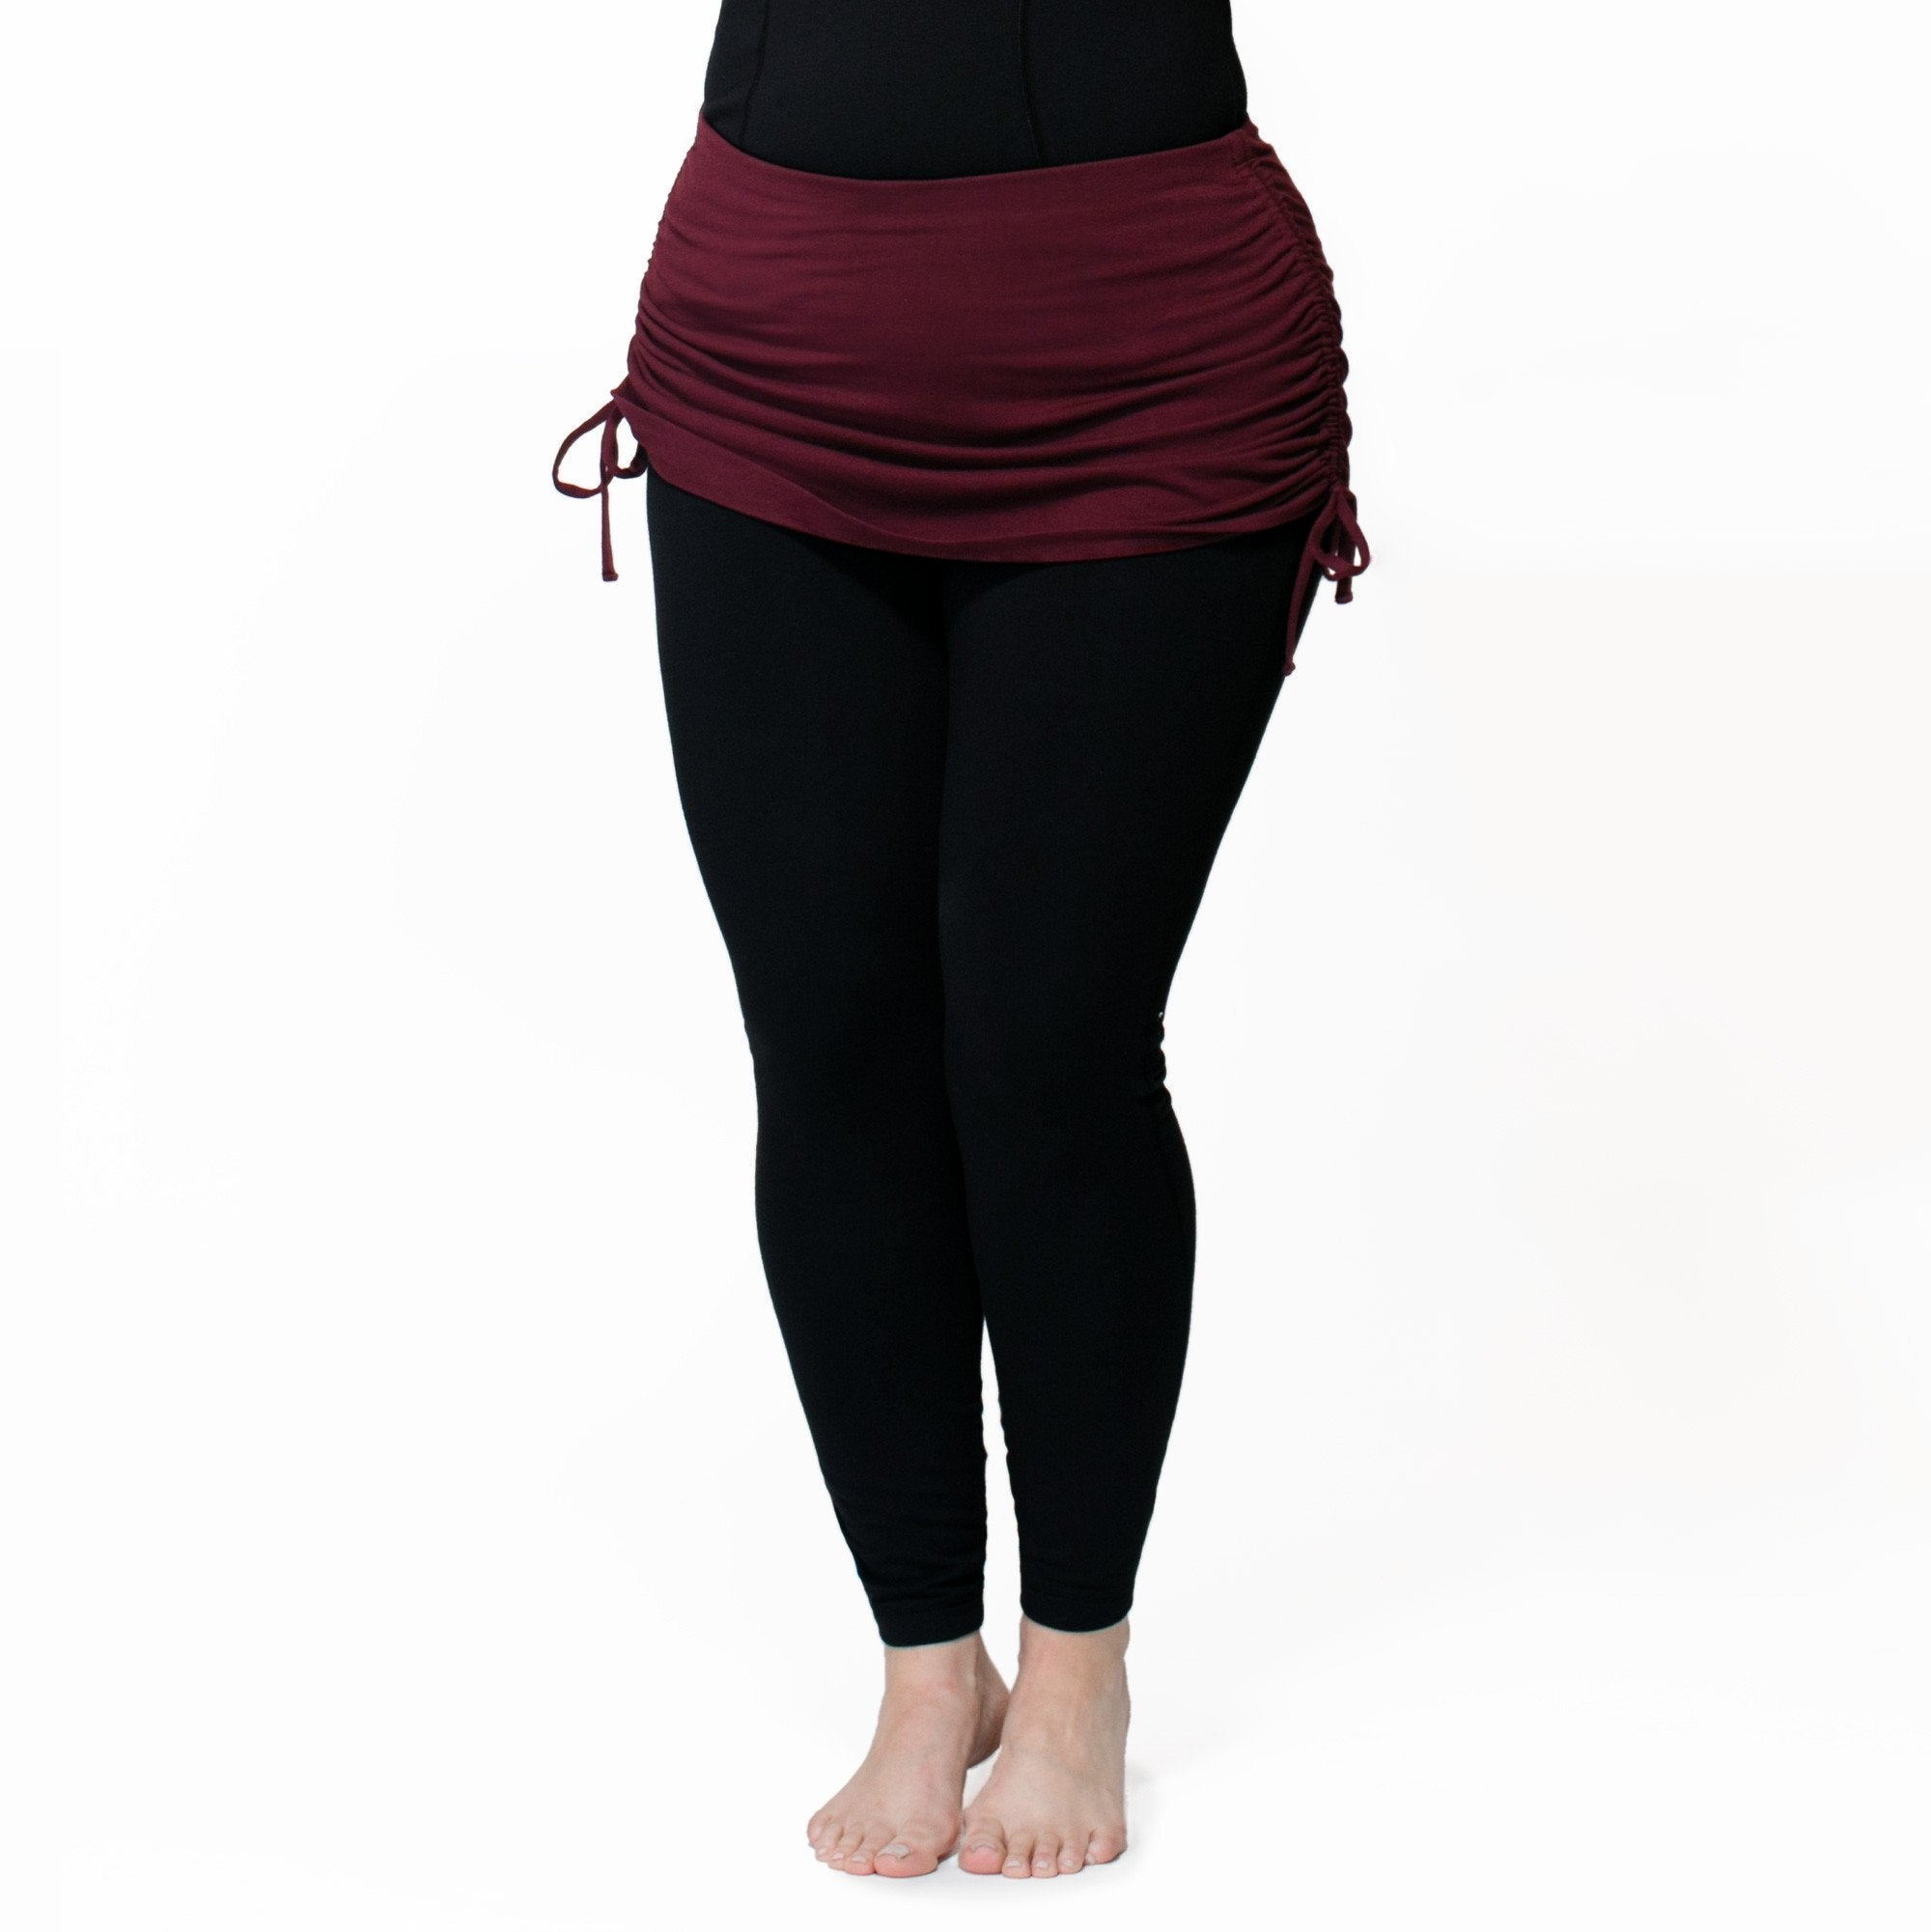 Phoebe Skirted Legging - Rainbeau Curves, , activewear, athleisure, fitness, workout, gym, performance, womens, ladies, plus size, curvy, full figured, spandex, cotton, polyester - 1